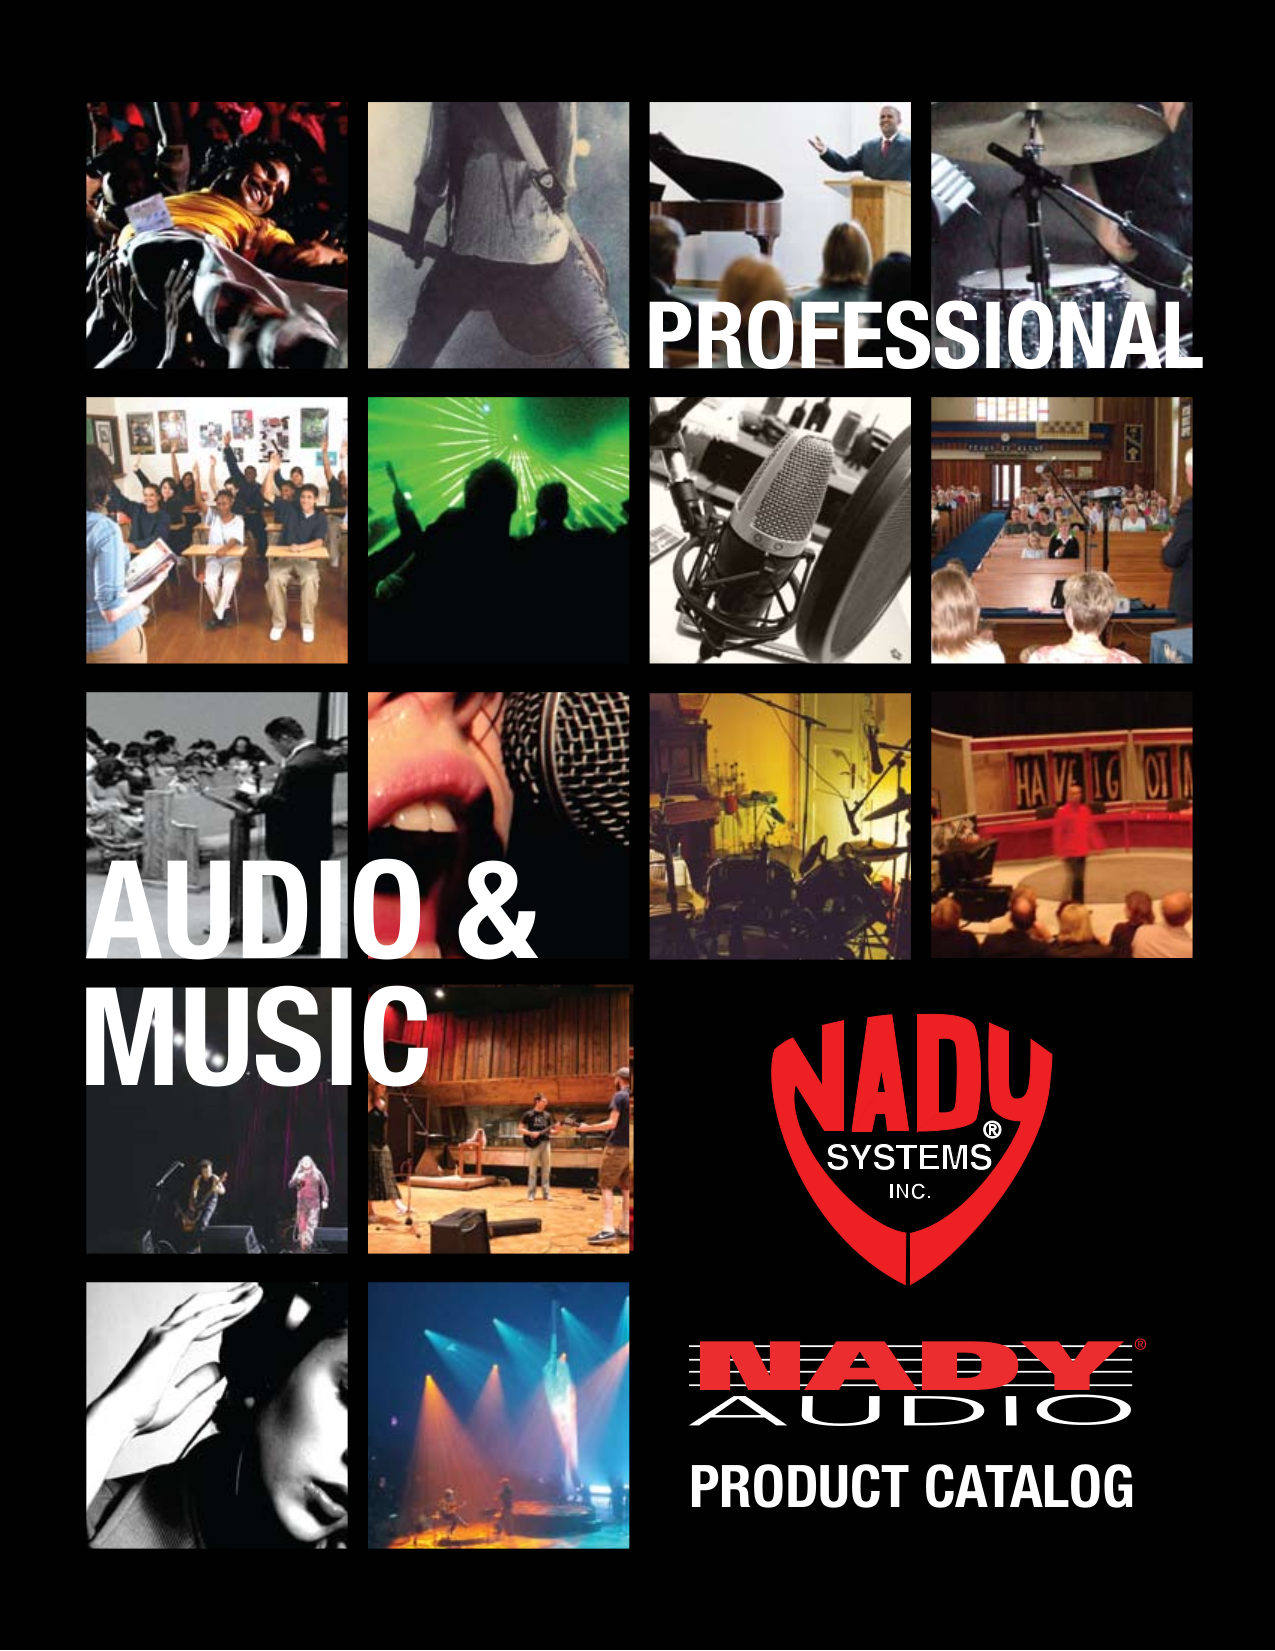 pdf for Nady Amp SPA 2400 manual